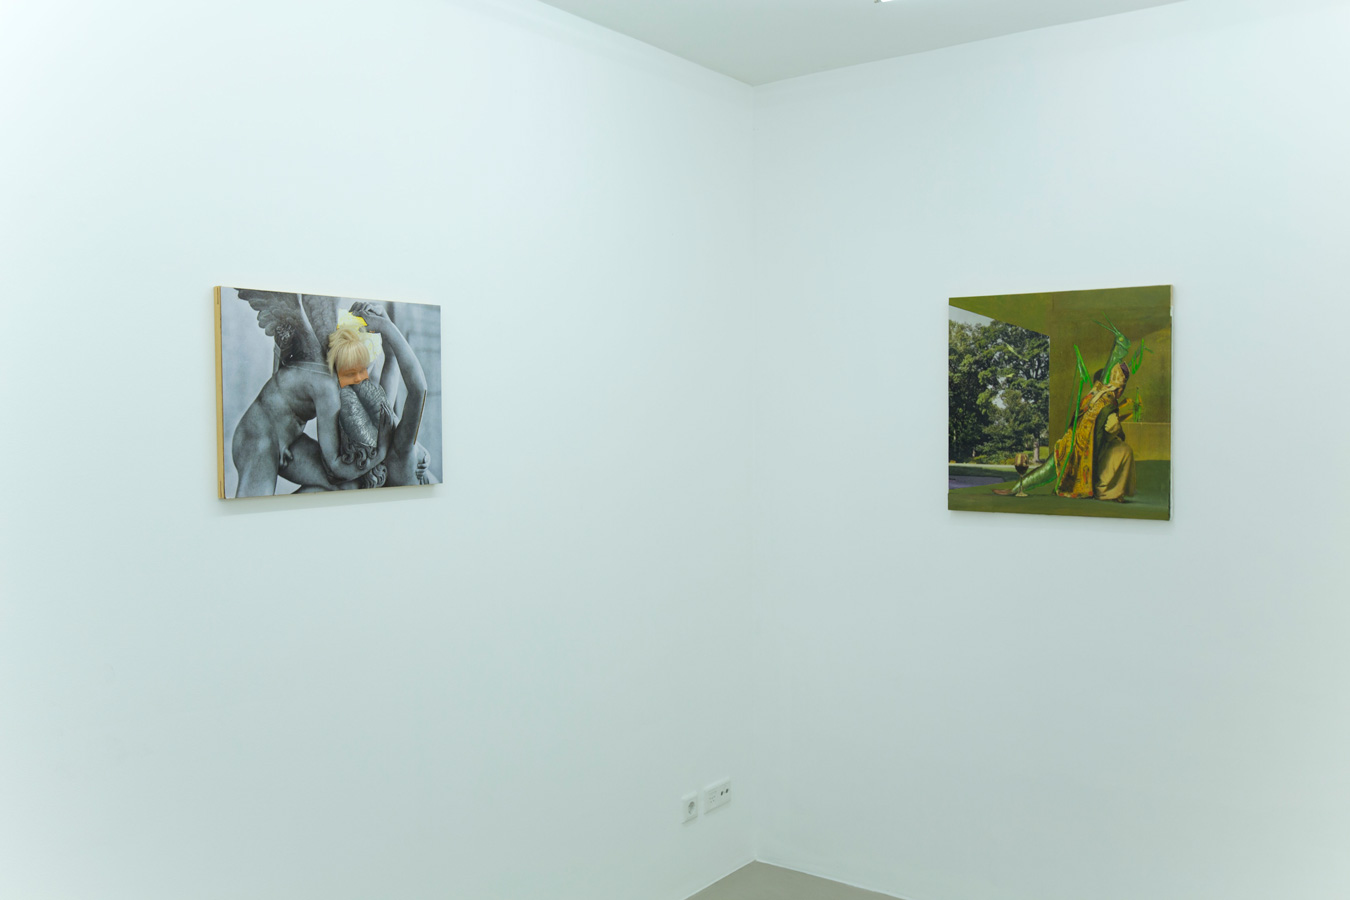 Ornis-A.-Gallery---Benoit-Hermans---Recent-works-exhibition-view-2